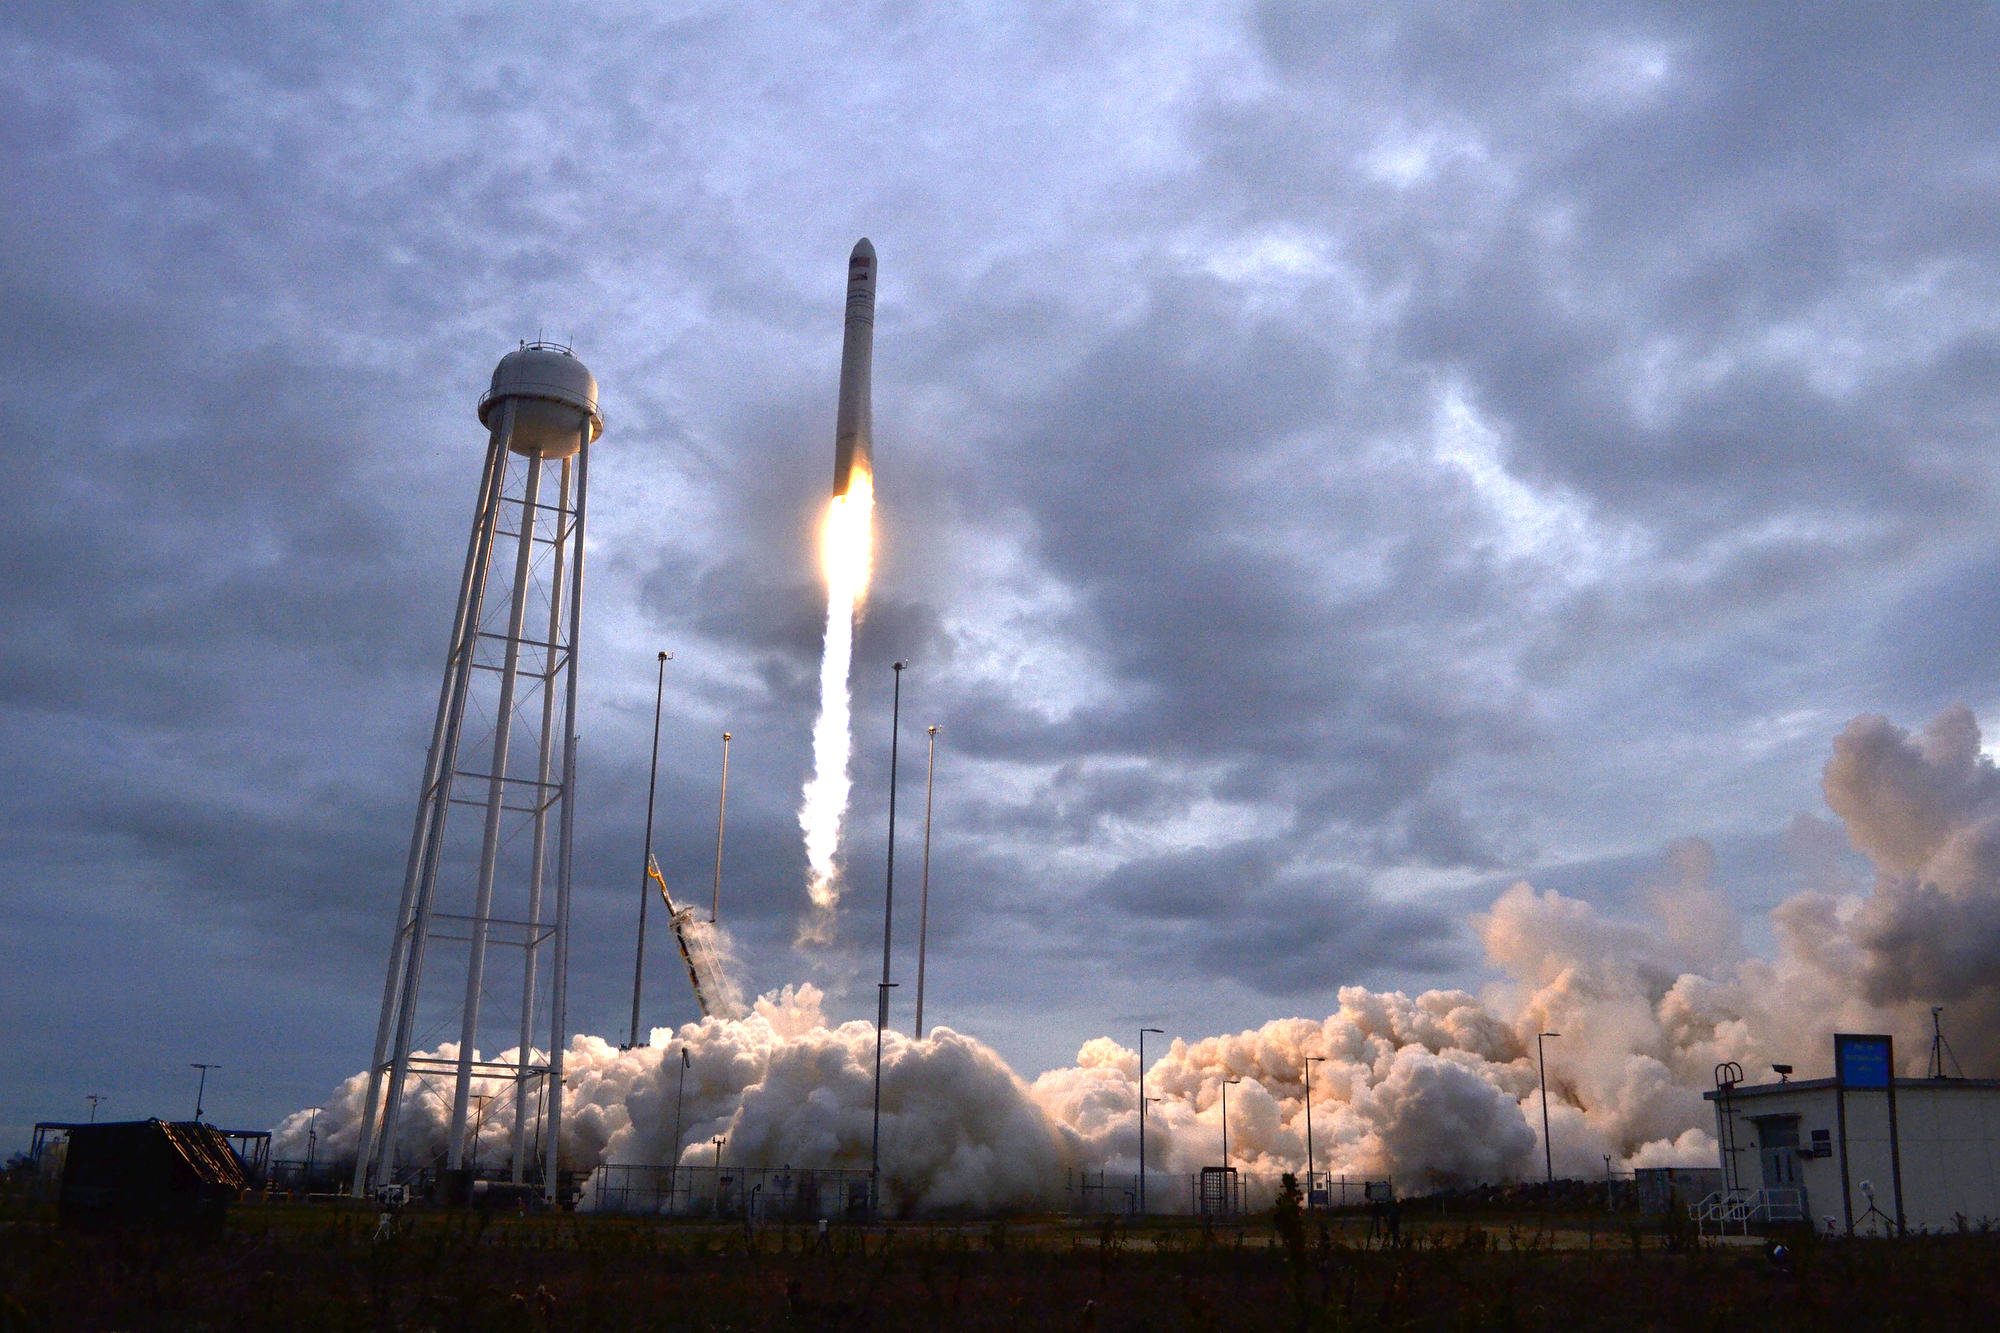 Photographing an Antares rocket launch at Wallops Island